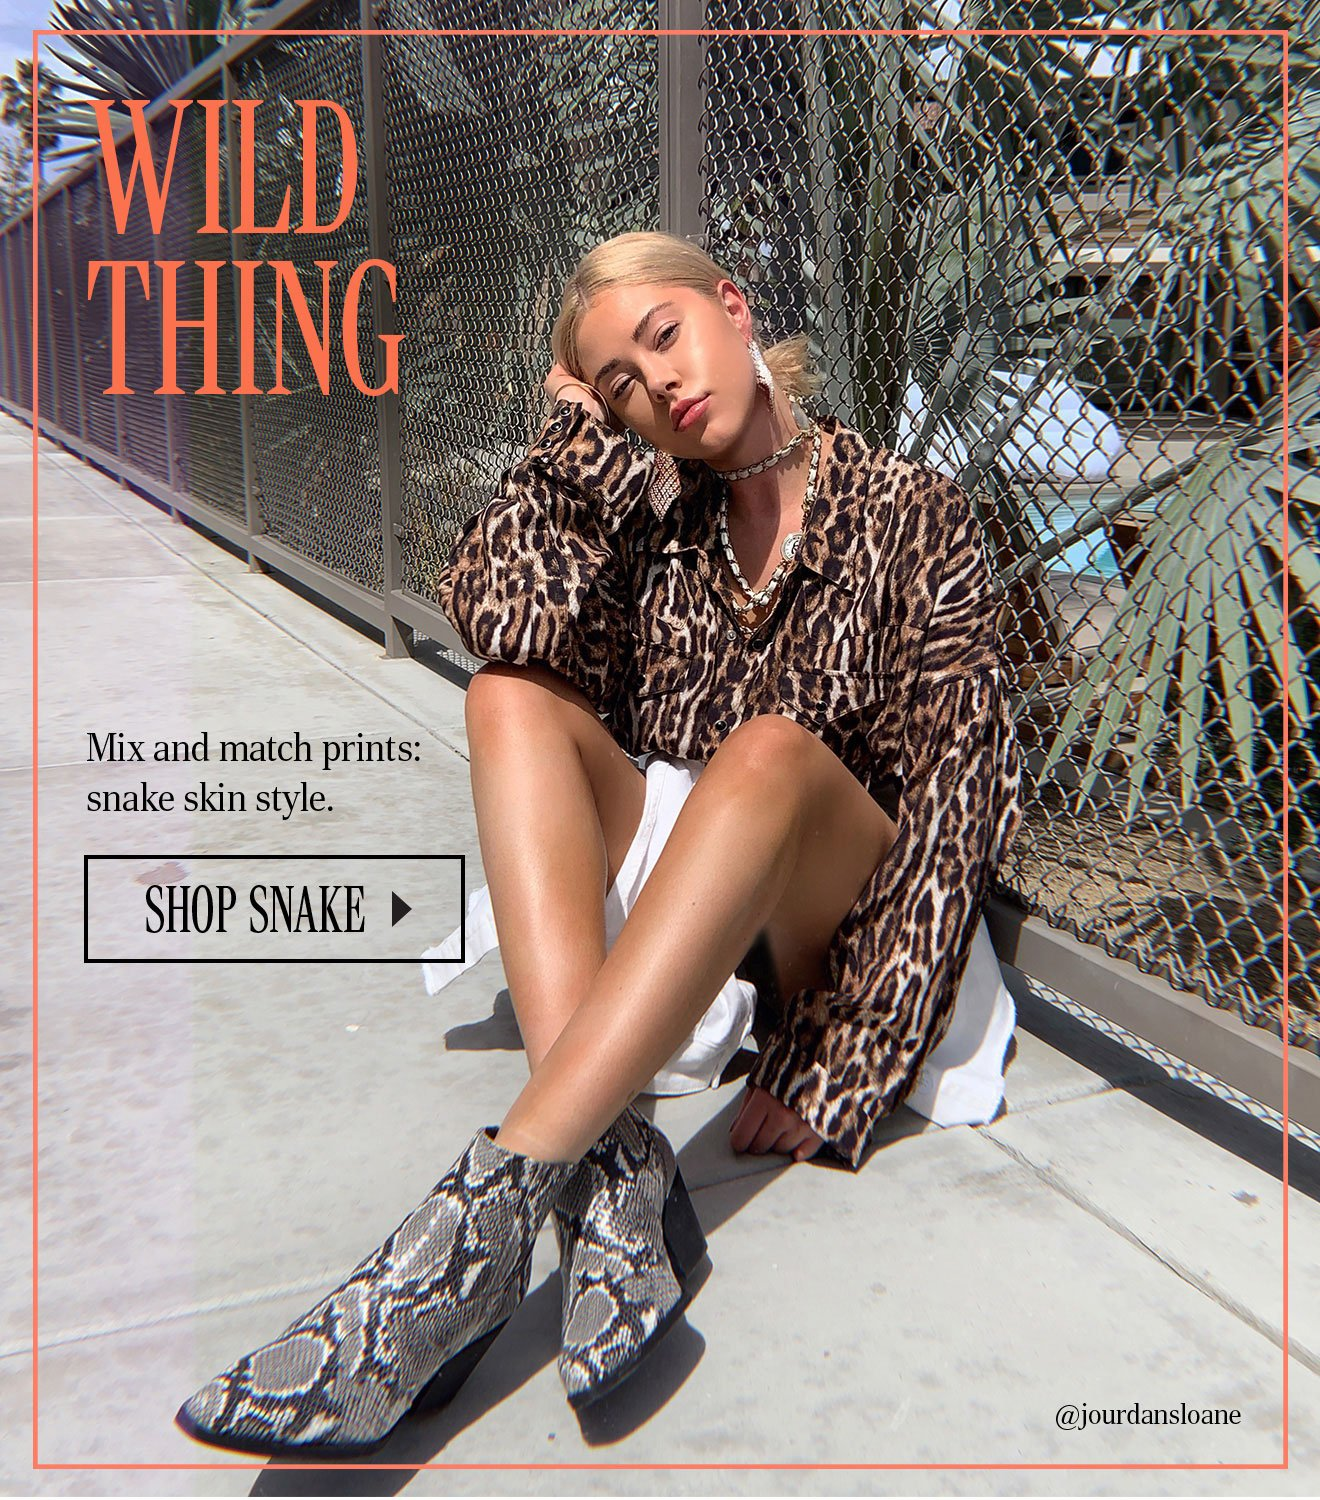 WILD THING. Mix and match prints: snake skin style. SHOP SNAKE.